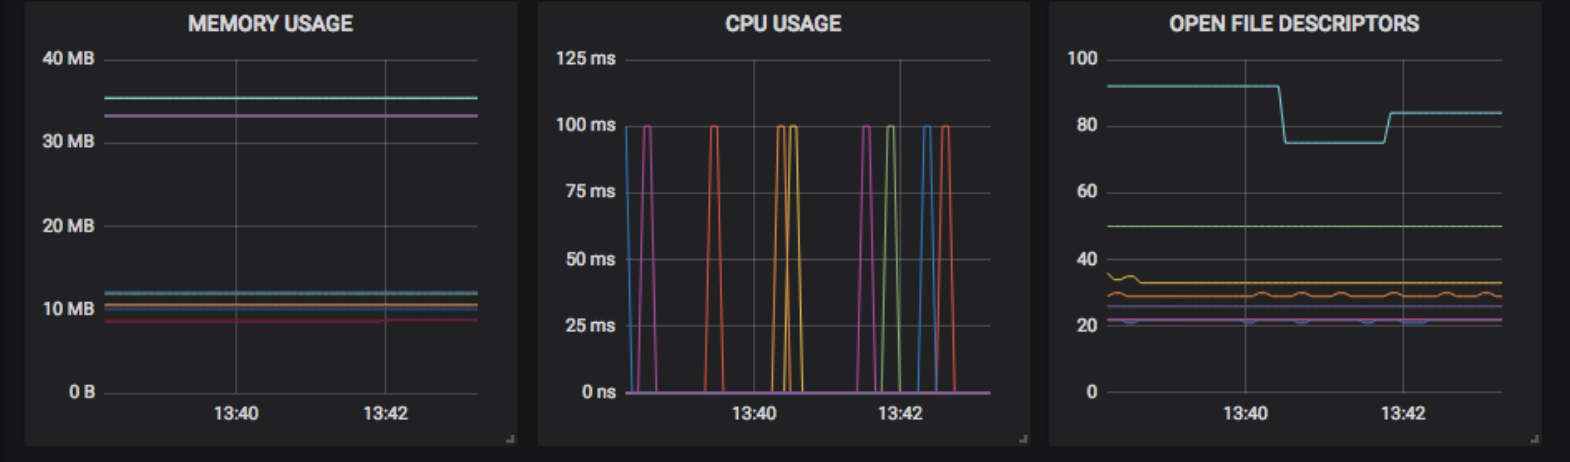 svcmesh-linkerd-dataplane-grafana-1570x462